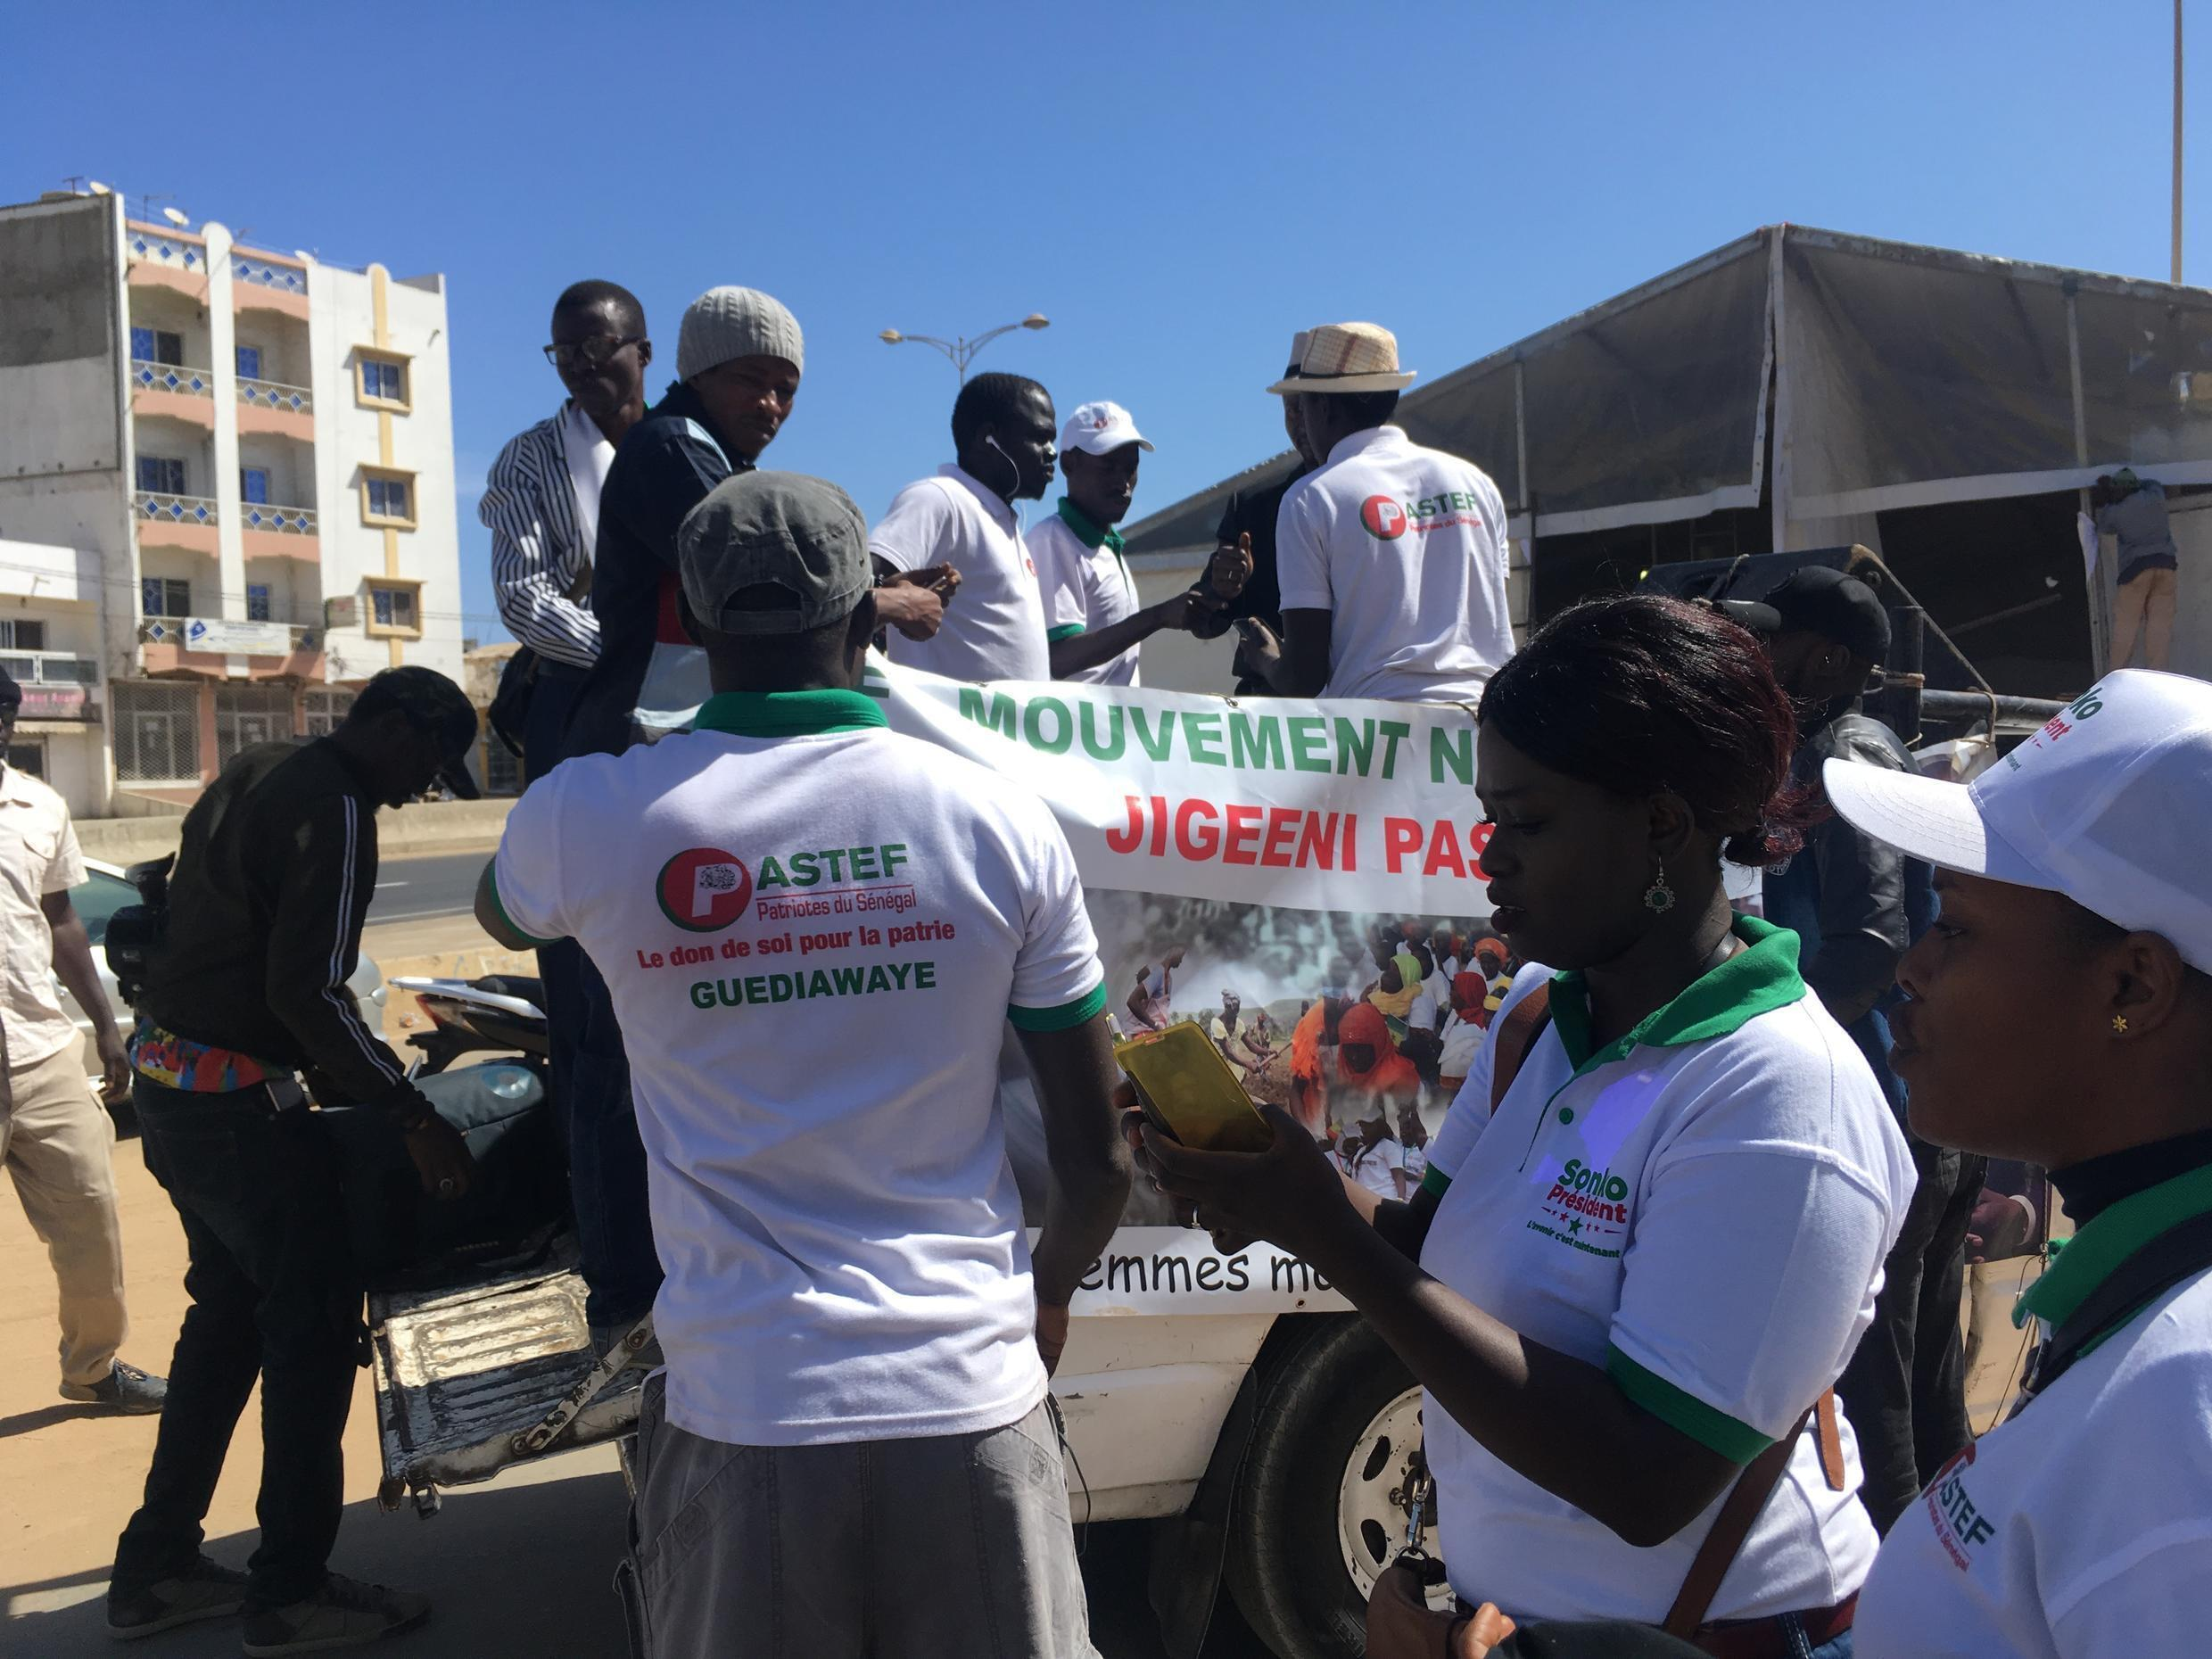 Ousmane Sonko supporters get their float ready for a parade in Dakar.